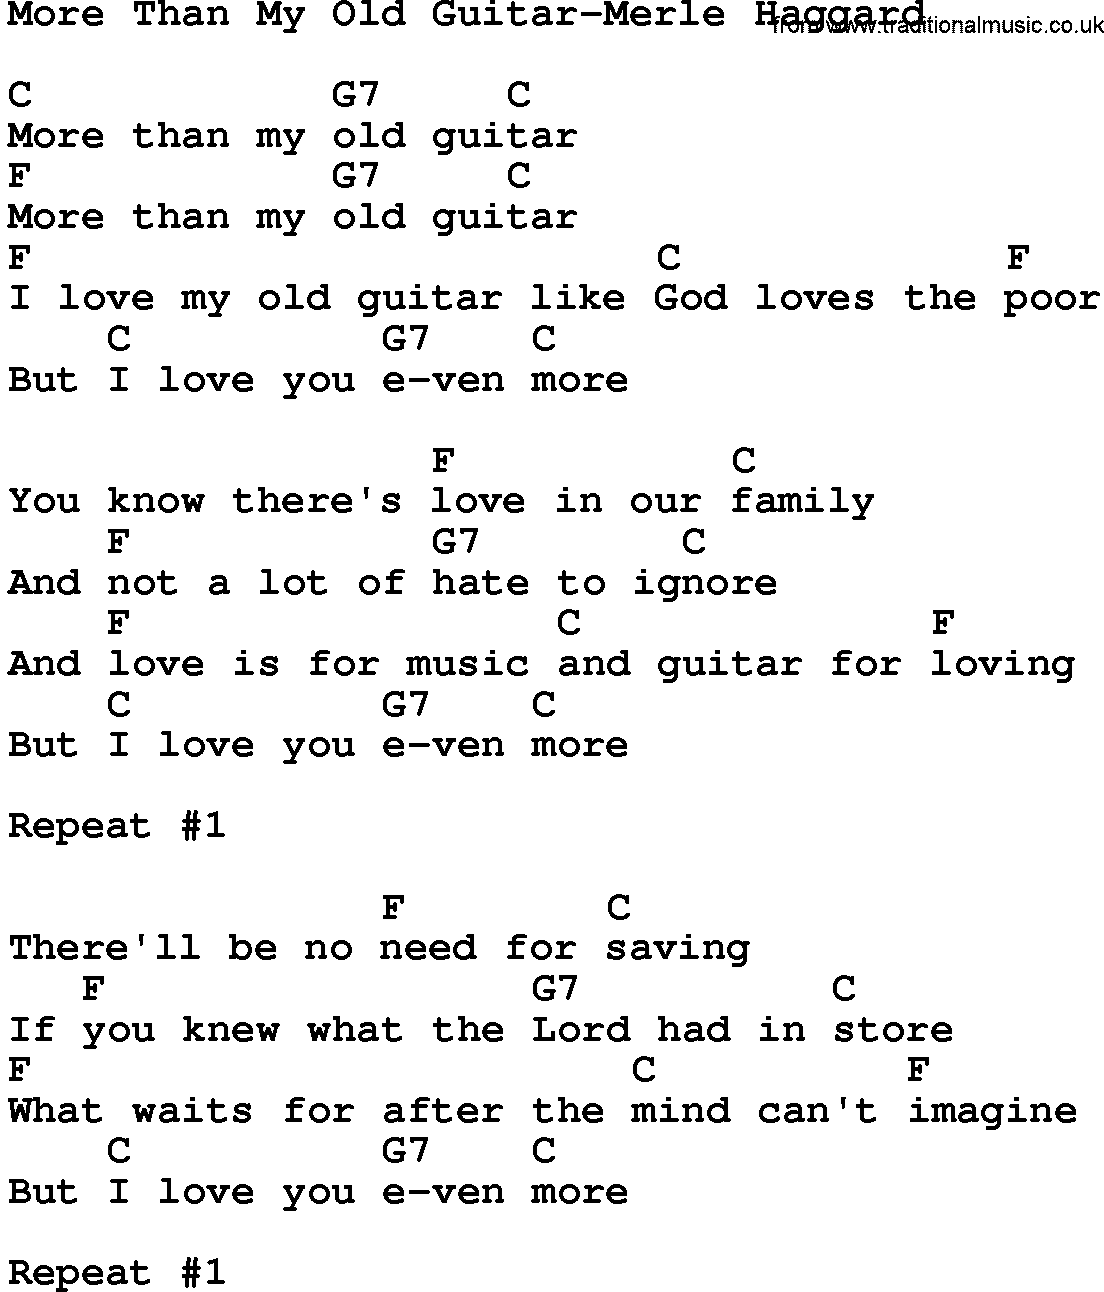 Country Musicmore Than My Old Guitar Merle Haggard Lyrics And Chords